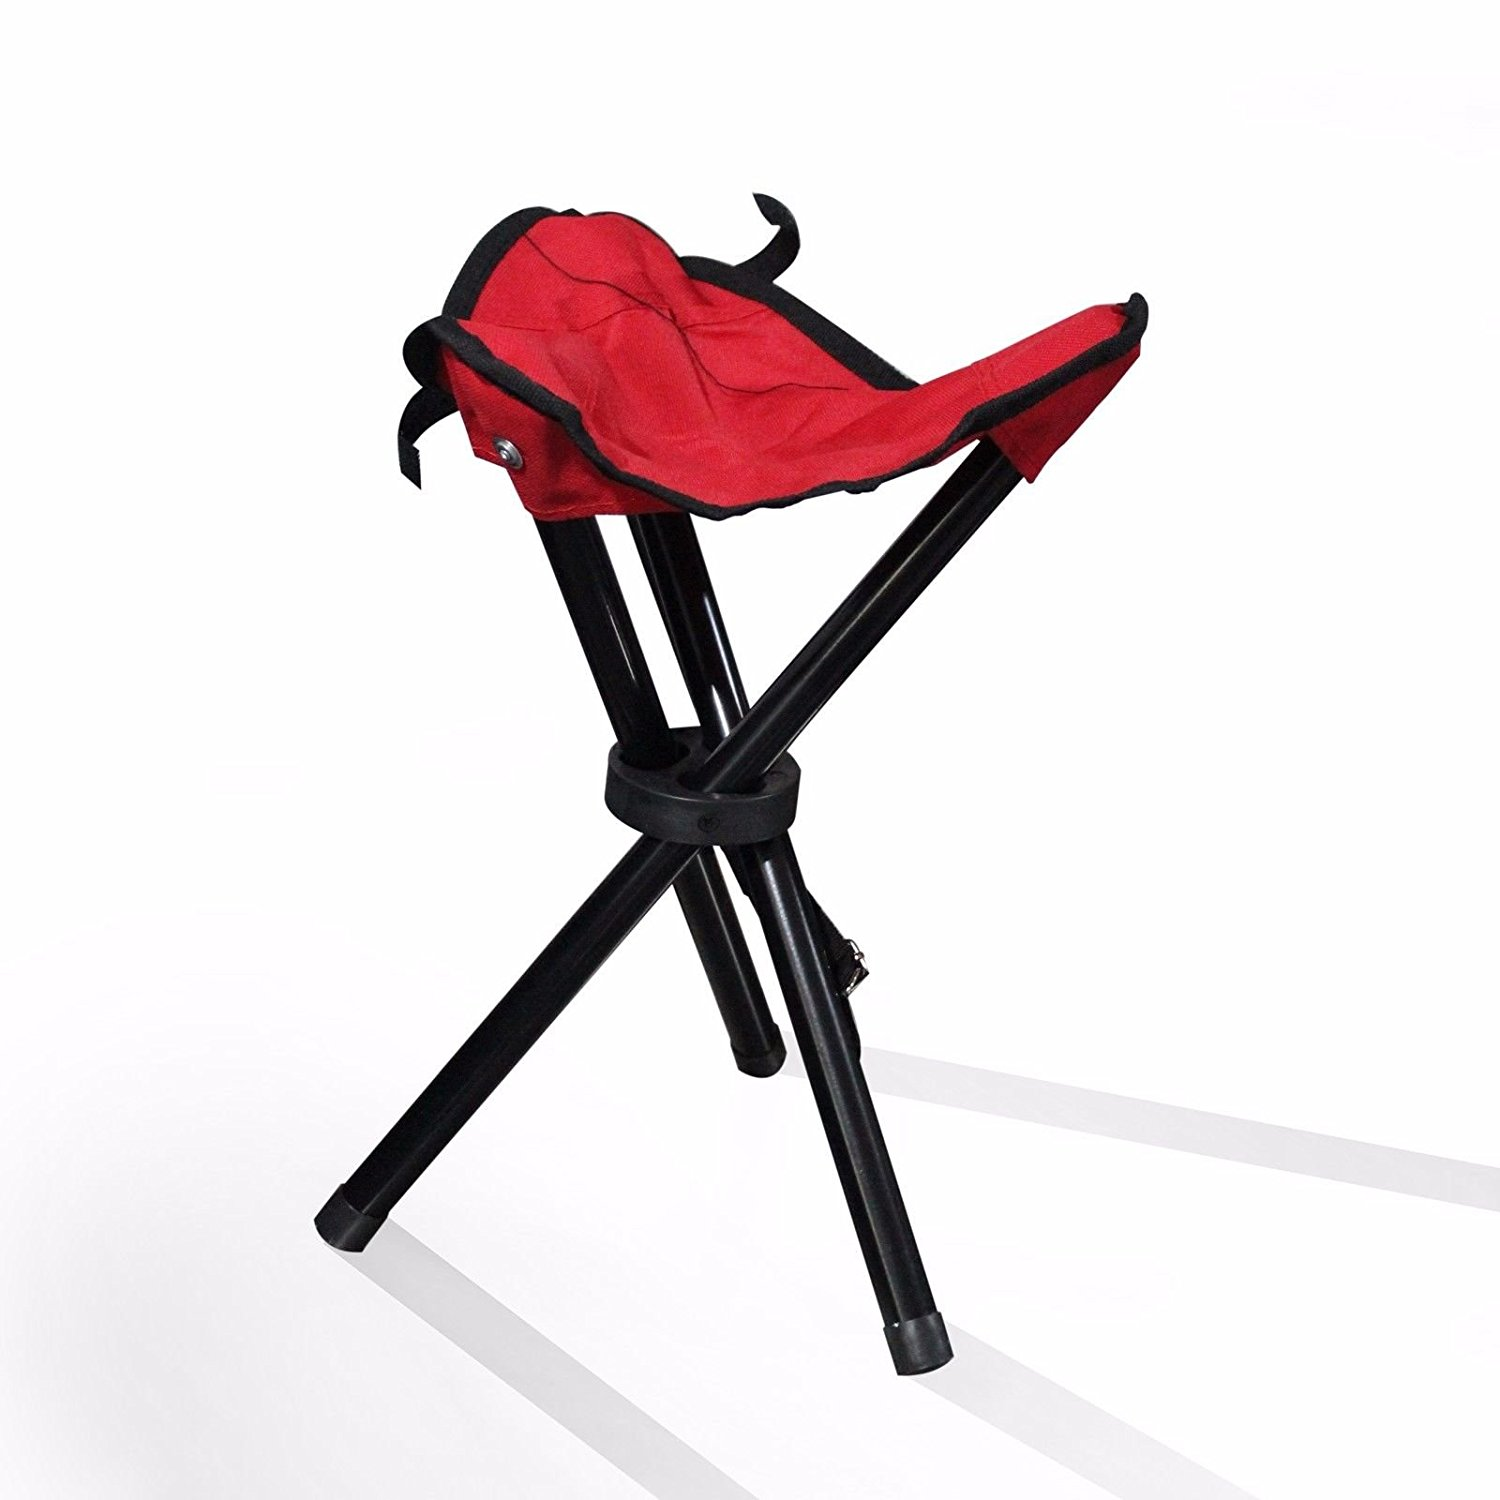 Groovy Buy Chairs Tall Lightweight Portable Folding Tripod Stool Ocoug Best Dining Table And Chair Ideas Images Ocougorg